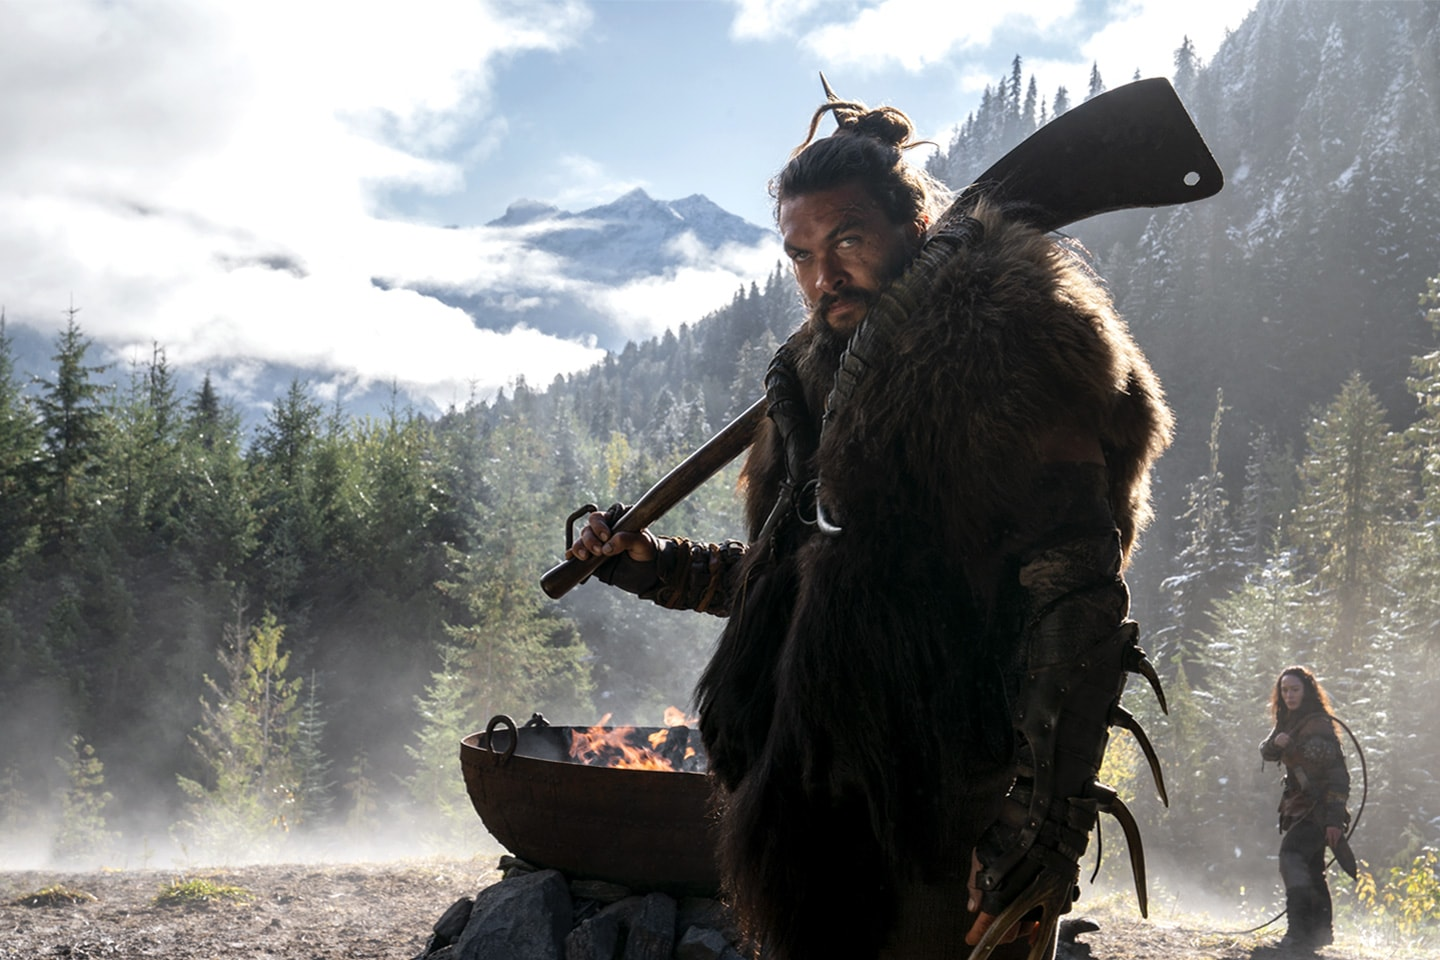 A man in the mountains stands with a weapon in front of a fire pit with a woman behind him.